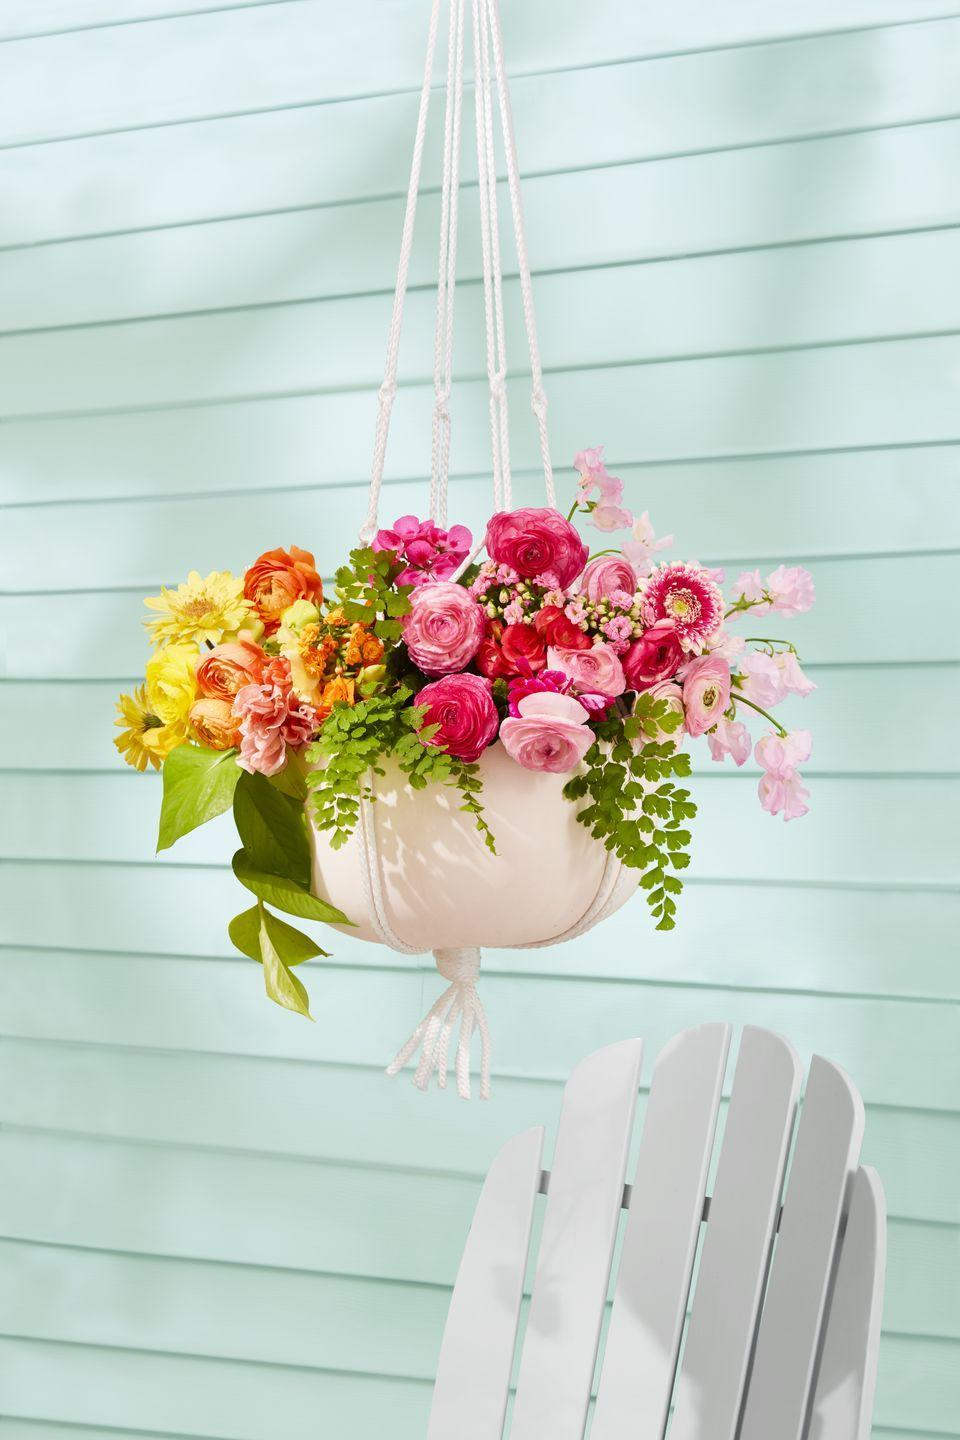 "<p>Instantly boost your home's curb appeal with <a href=""https://www.goodhousekeeping.com/home/gardening/g2503/surprising-flower-meanings/"" rel=""nofollow noopener"" target=""_blank"" data-ylk=""slk:bright blooms"" class=""link rapid-noclick-resp"">bright blooms</a> on each side of your front door. Expecting guests? Steal these tricks<br>from our home team: Add stems from a supermarket bouquet for extra fullness and mint for a fragrant burst.</p>"